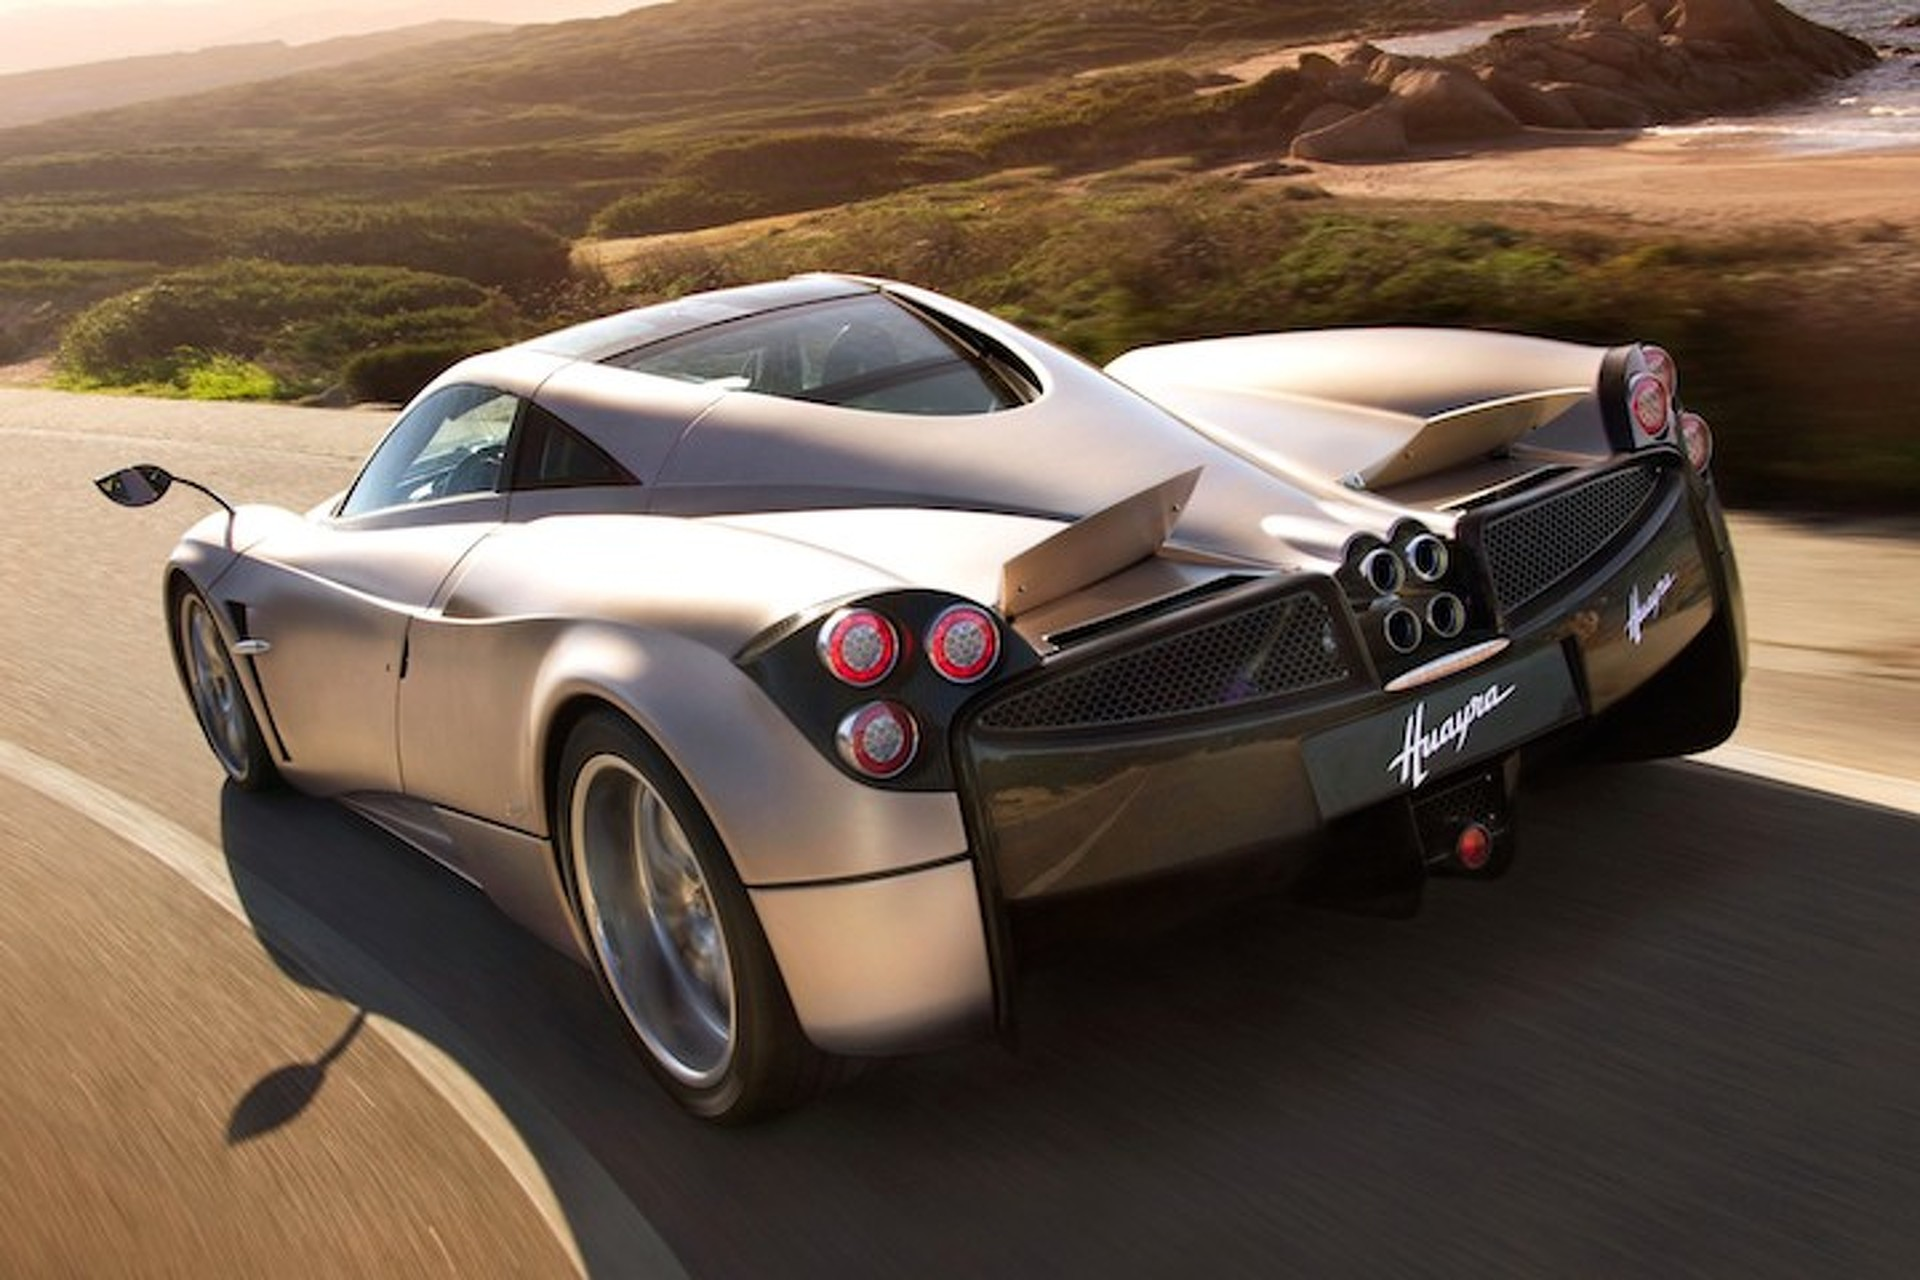 Want a Manual in Your Pagani Huayra? It's Possible, But Expensive